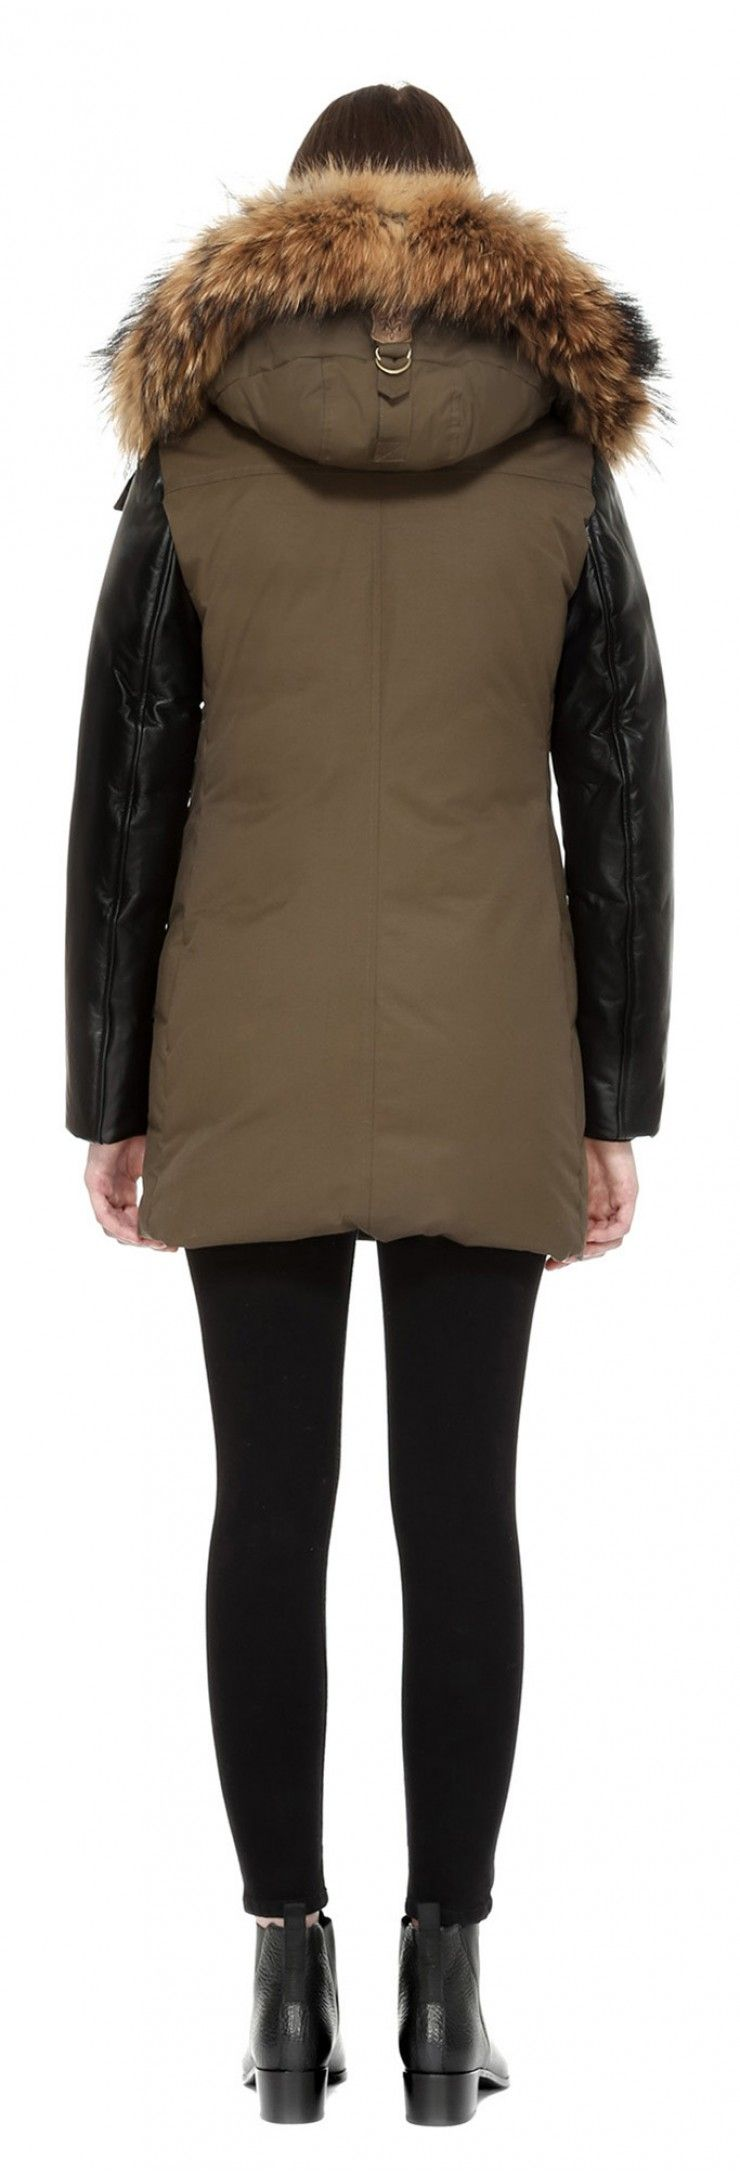 CYNTHIA-F5 ARMY LUX DOWN PARKA WITH LEATHER SLEEVES